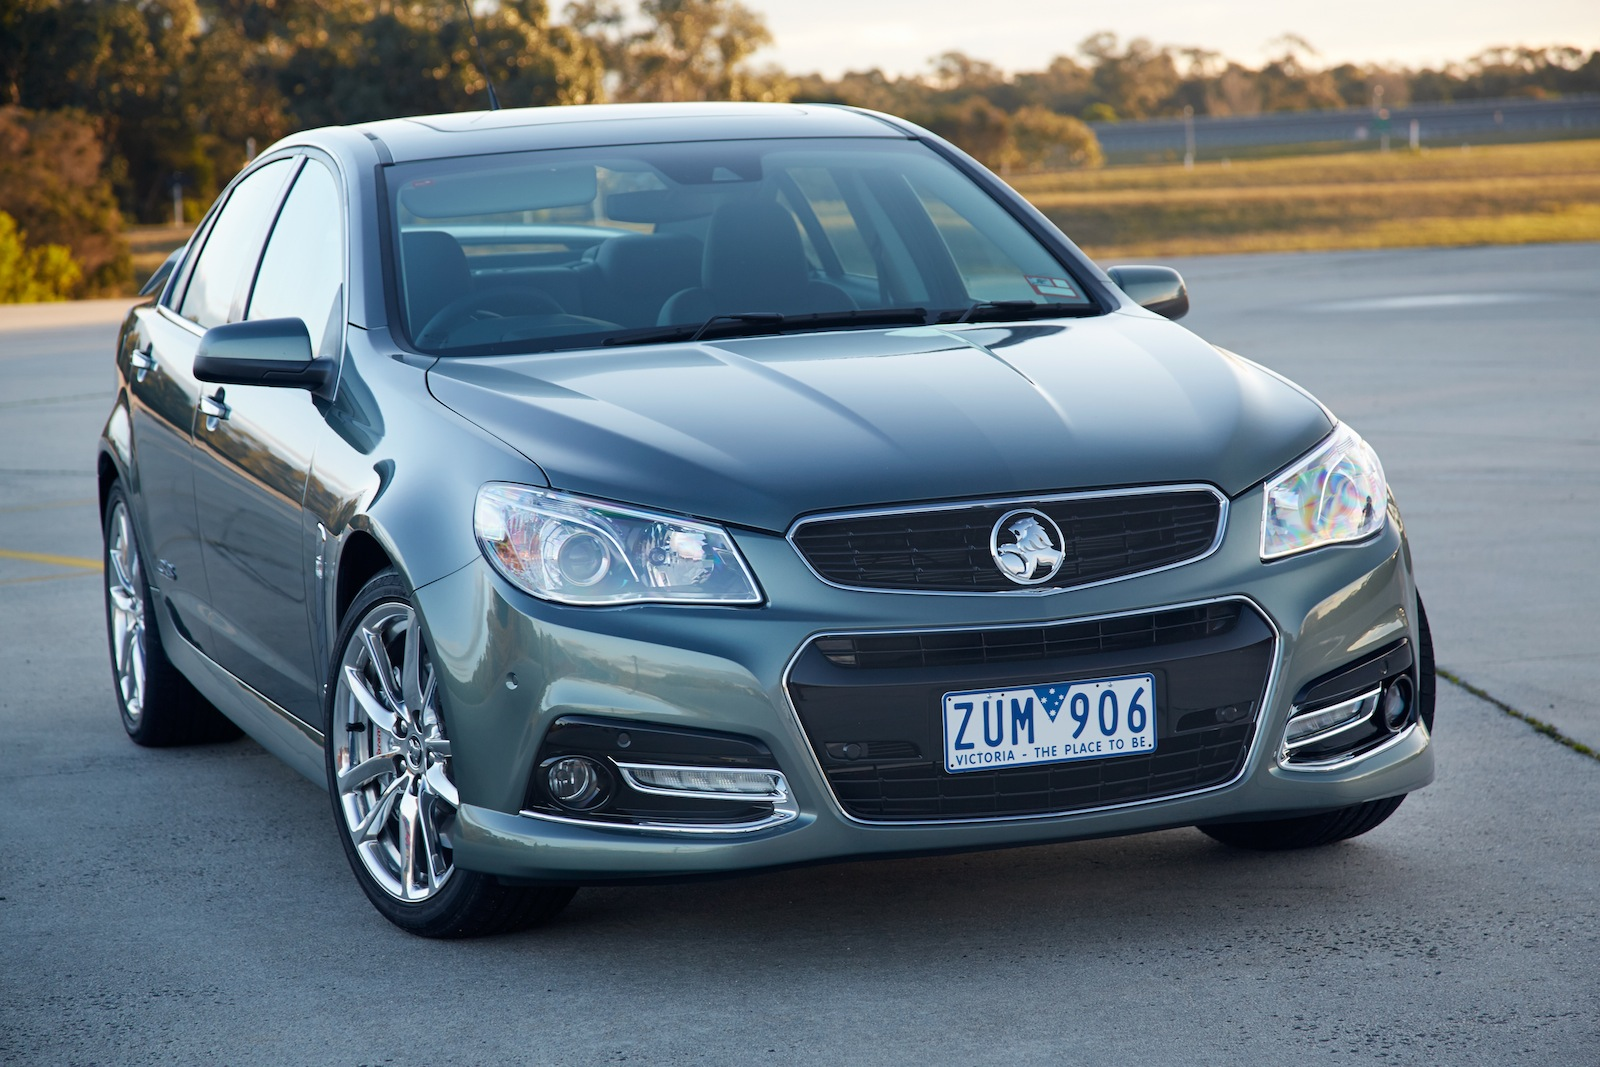 2014 Holden VF Commodore Ute SSV Redline | machinespider.com